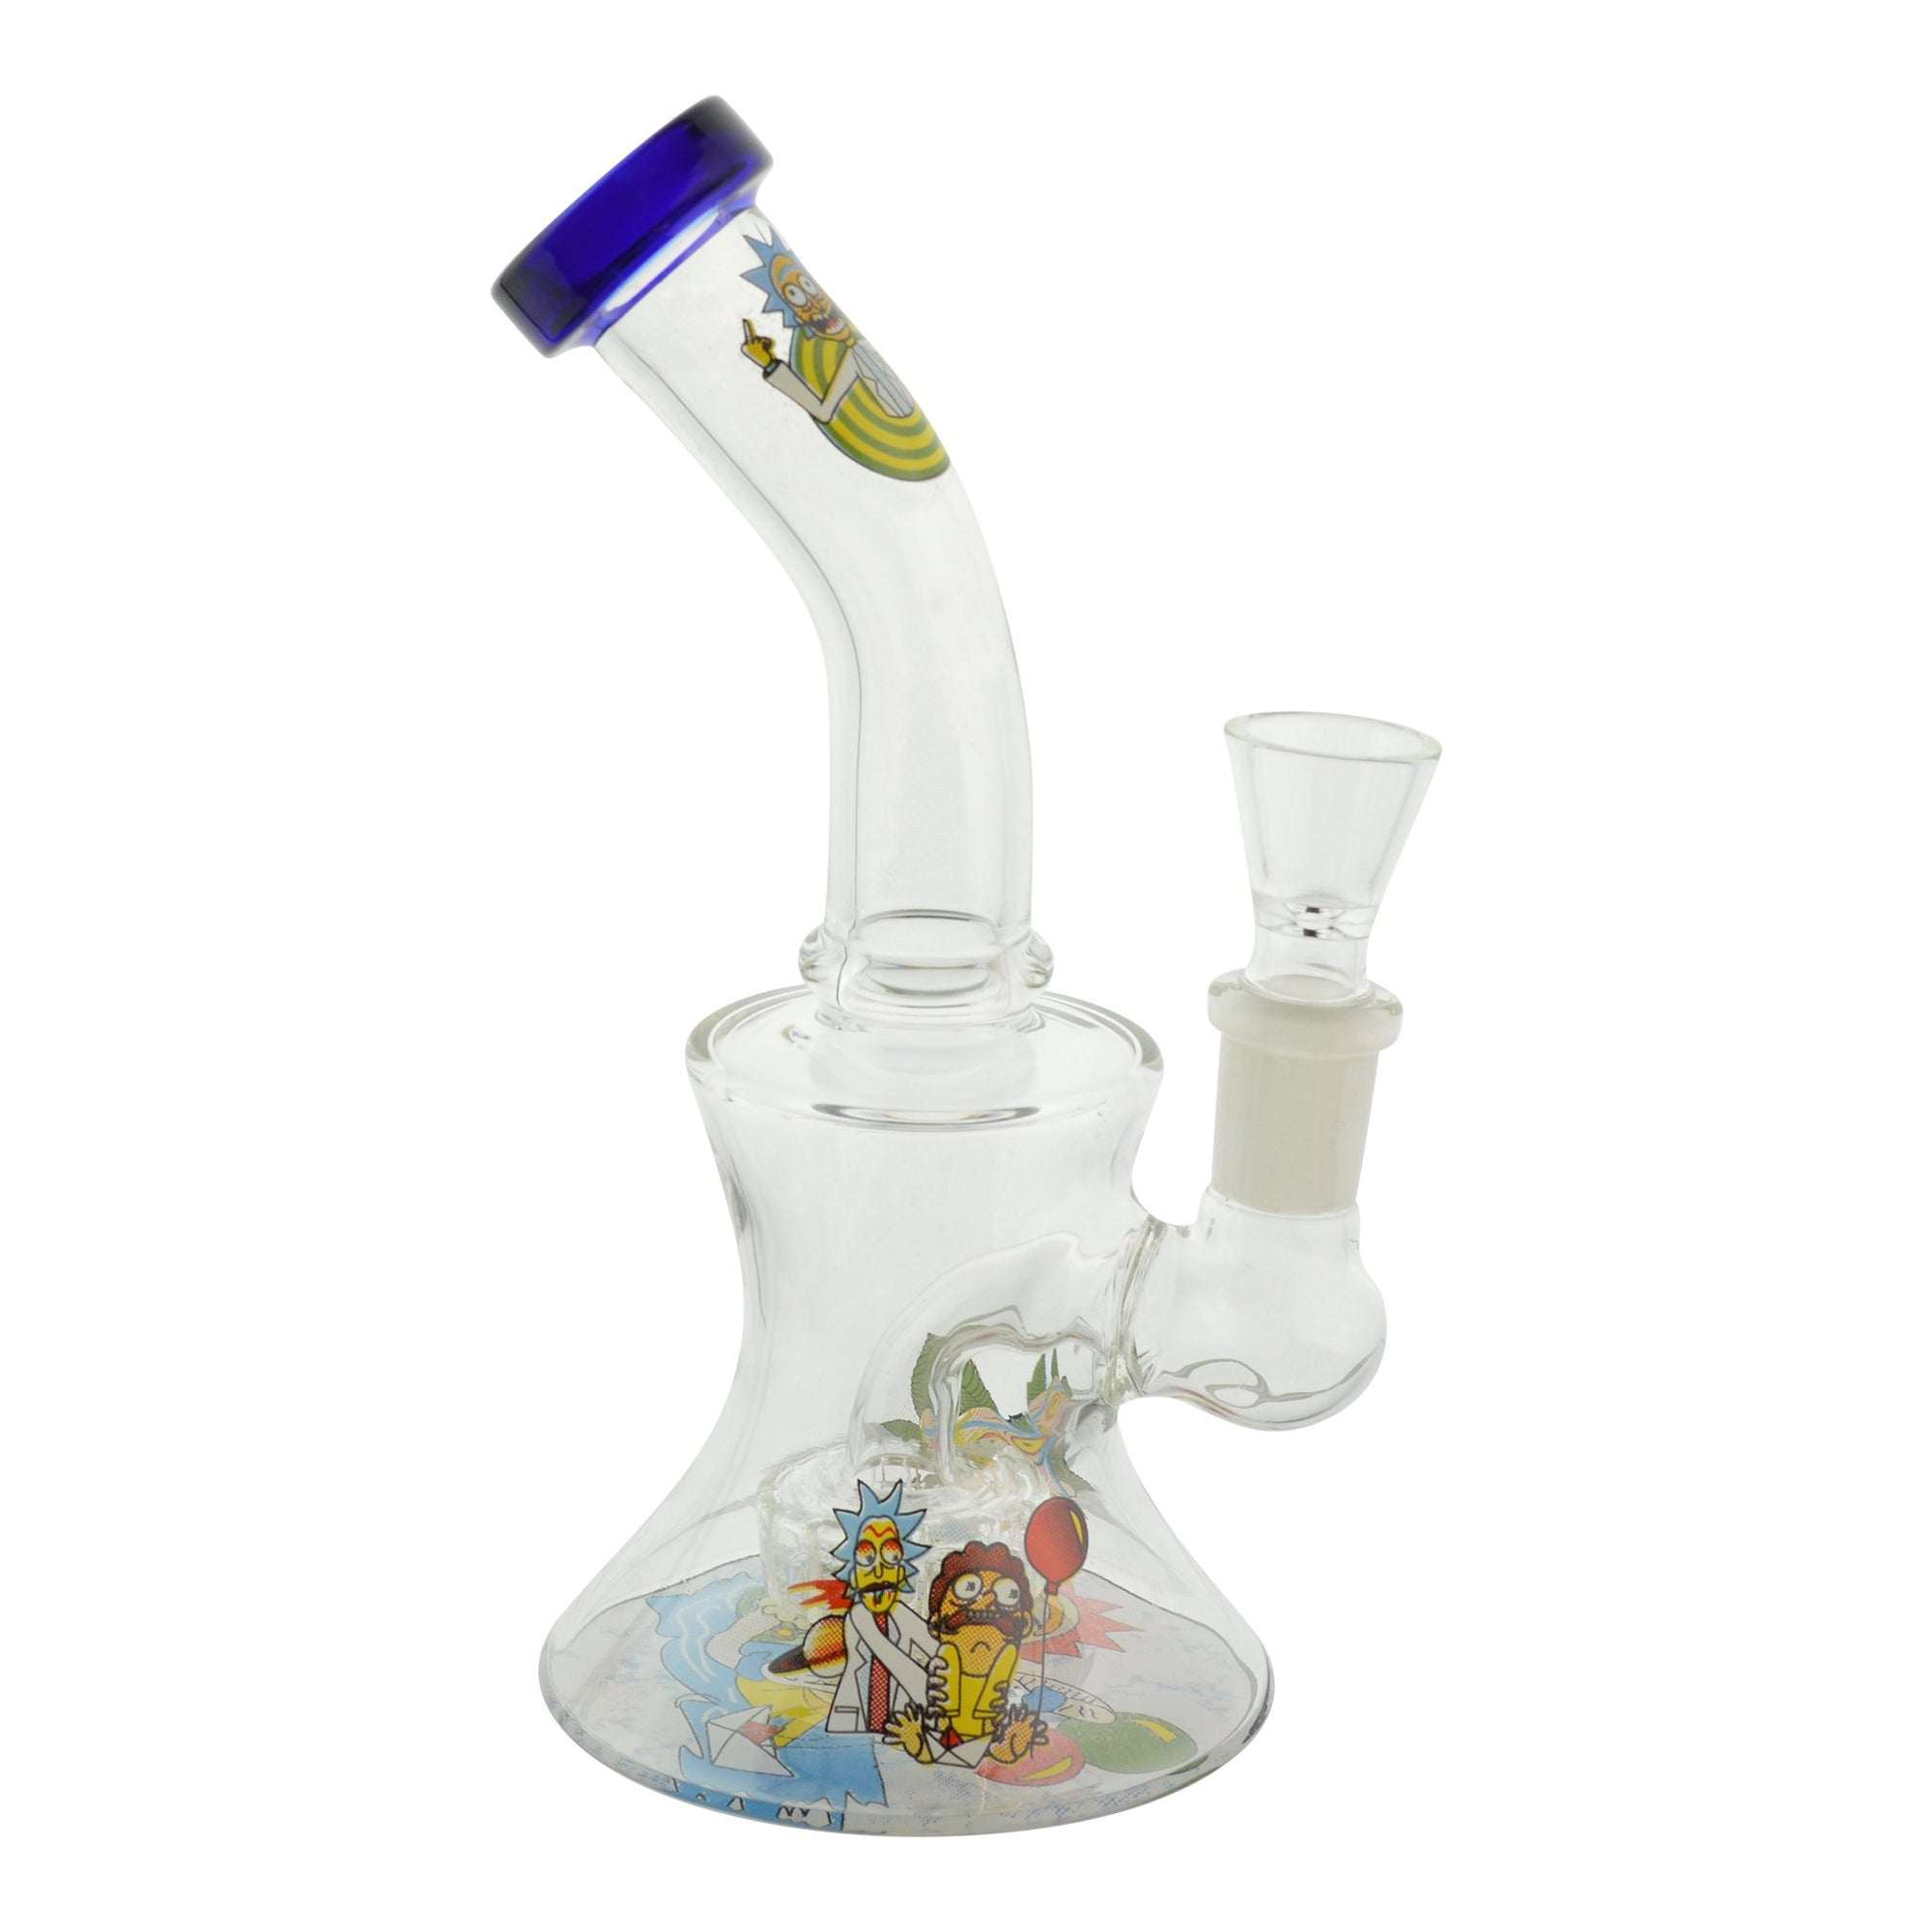 7 inch bong smoking device wide base Rick and Morty design on chamber and on bent neck blue mouthpiece on left bowl on right